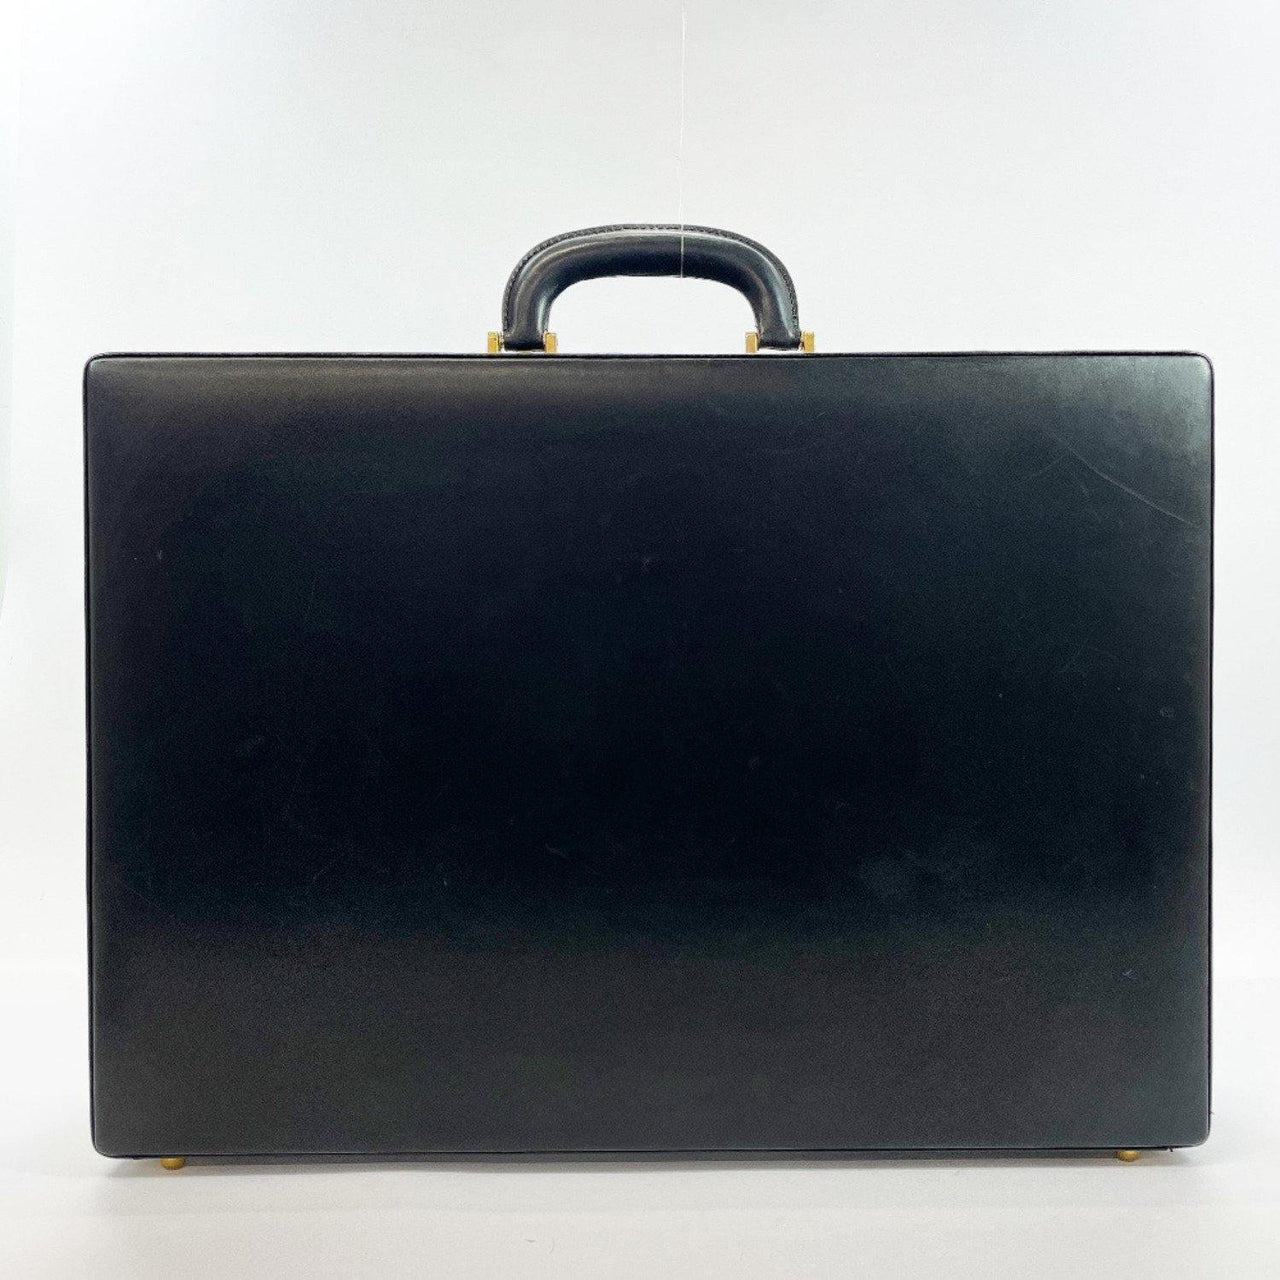 BALLY Business bag Attache case leather black mens Used - JP-BRANDS.com